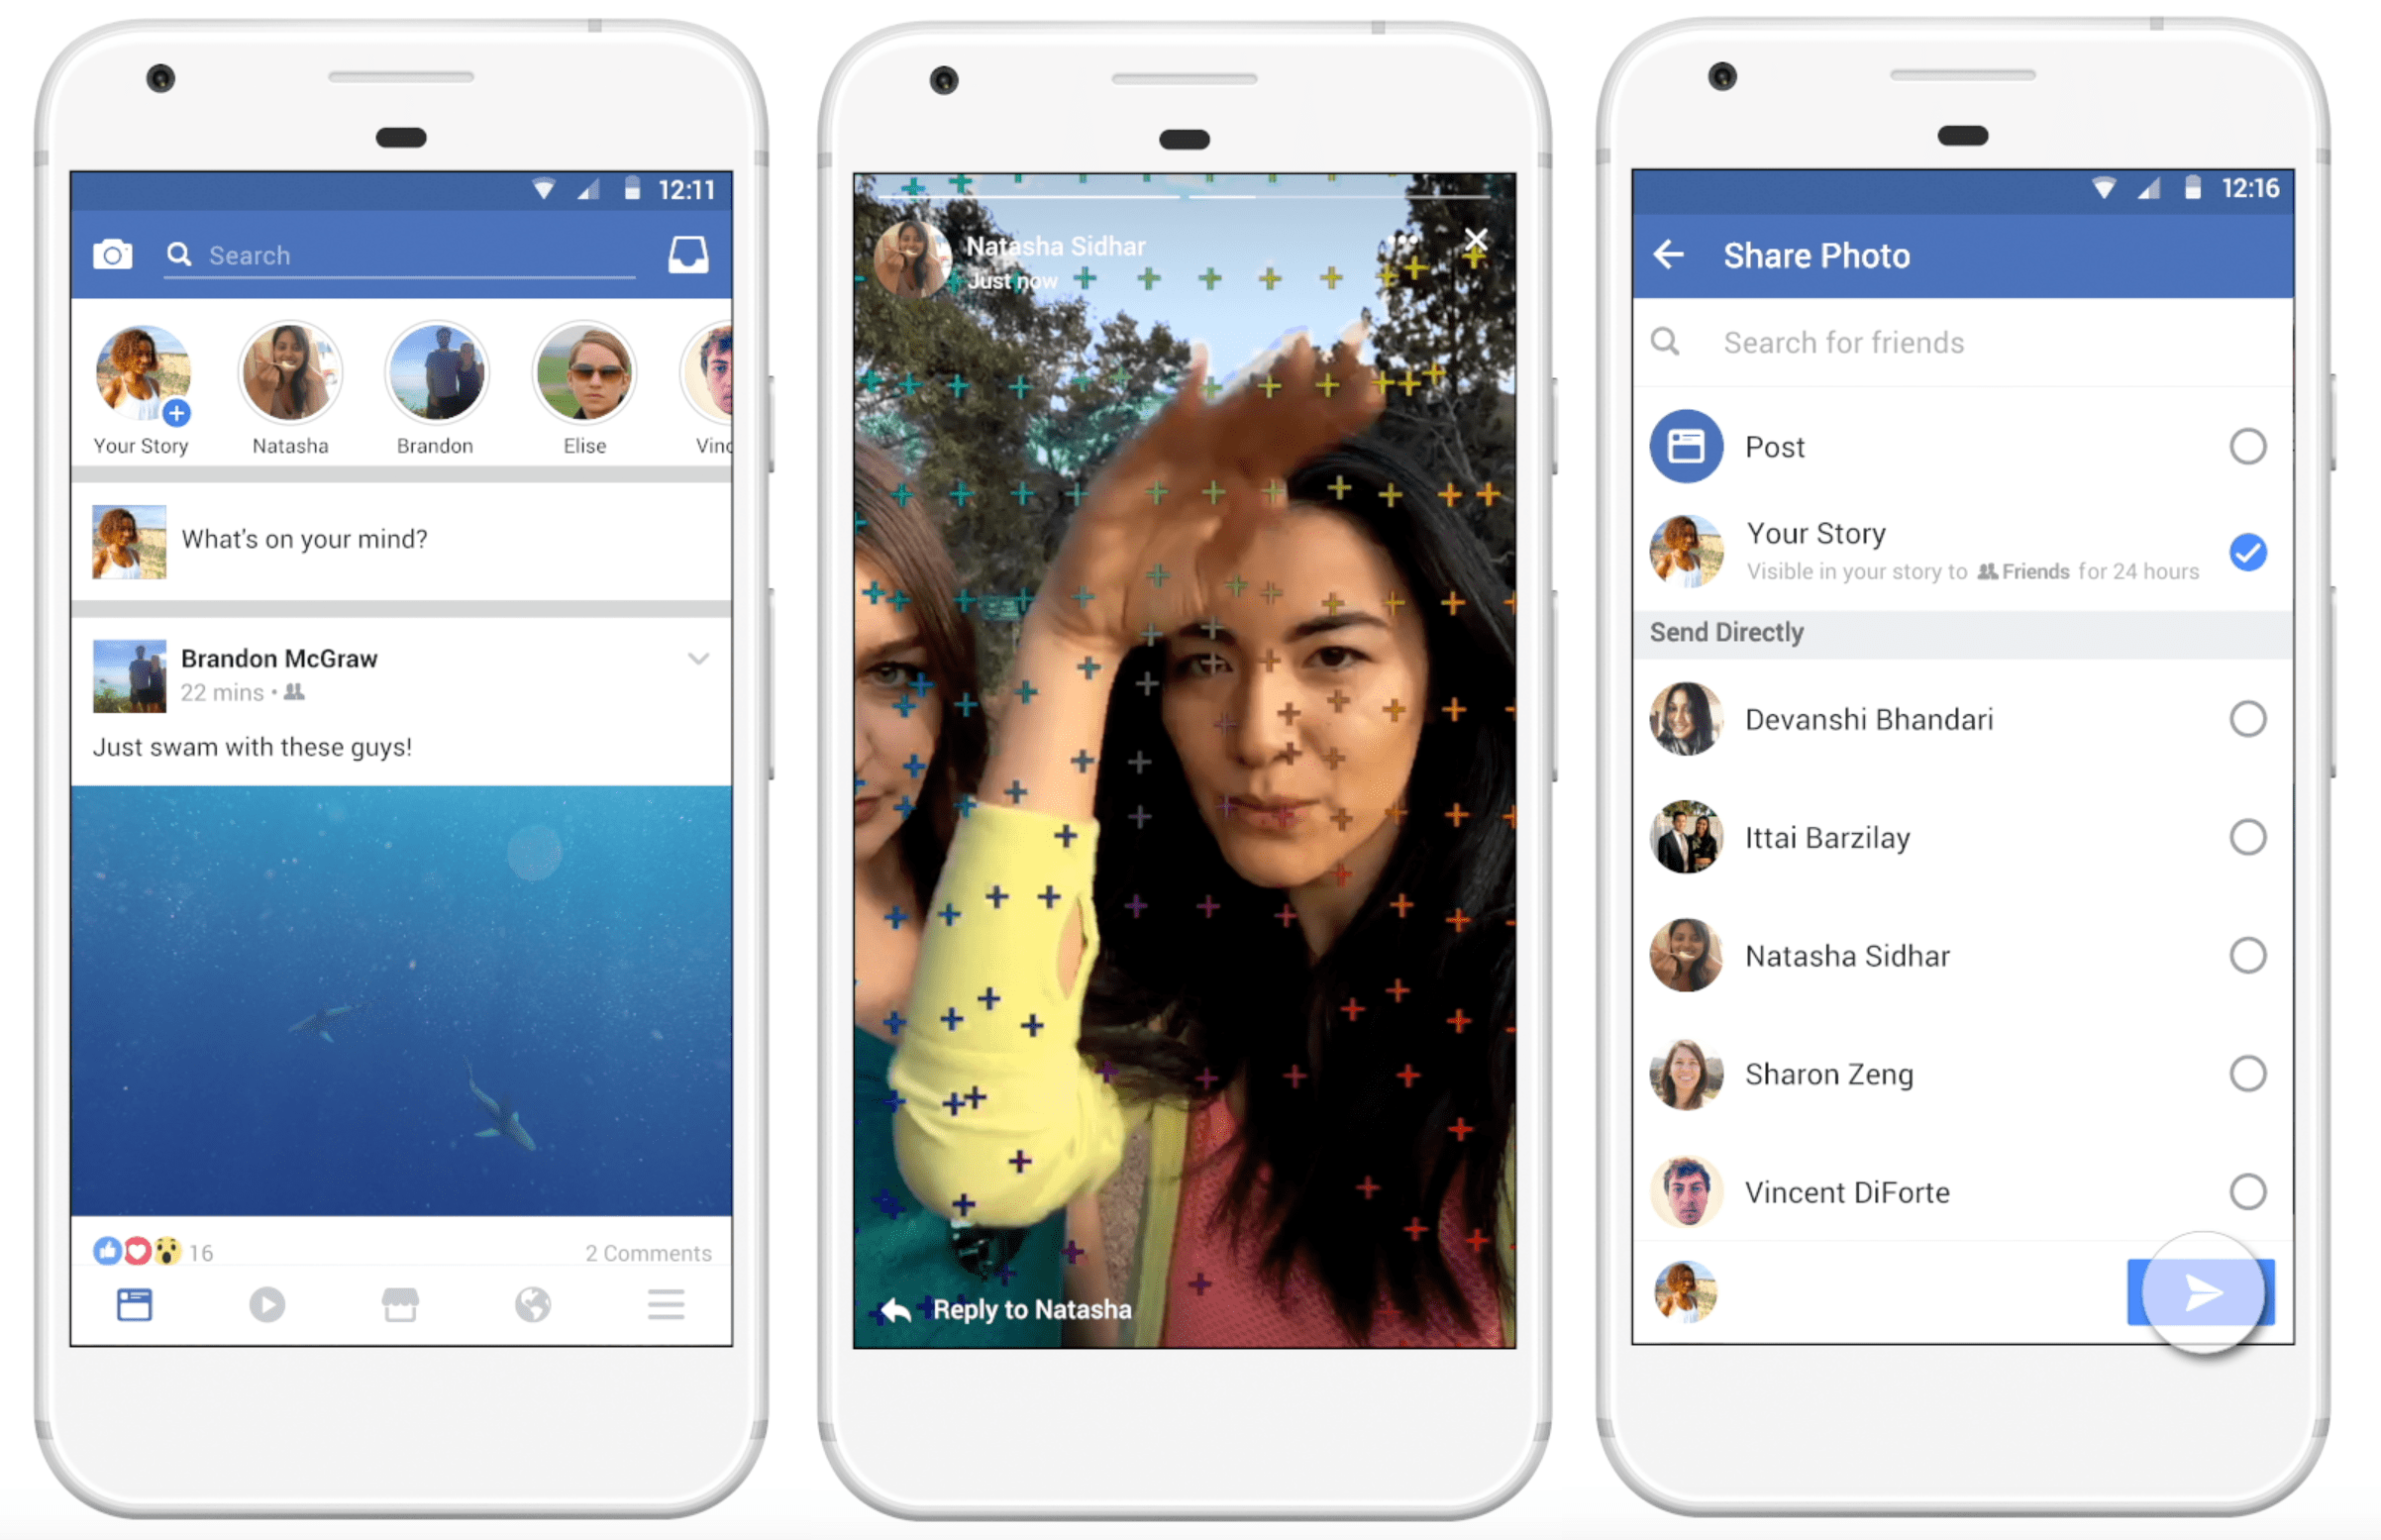 Instagram users will soon be able to share Stories on Facebook